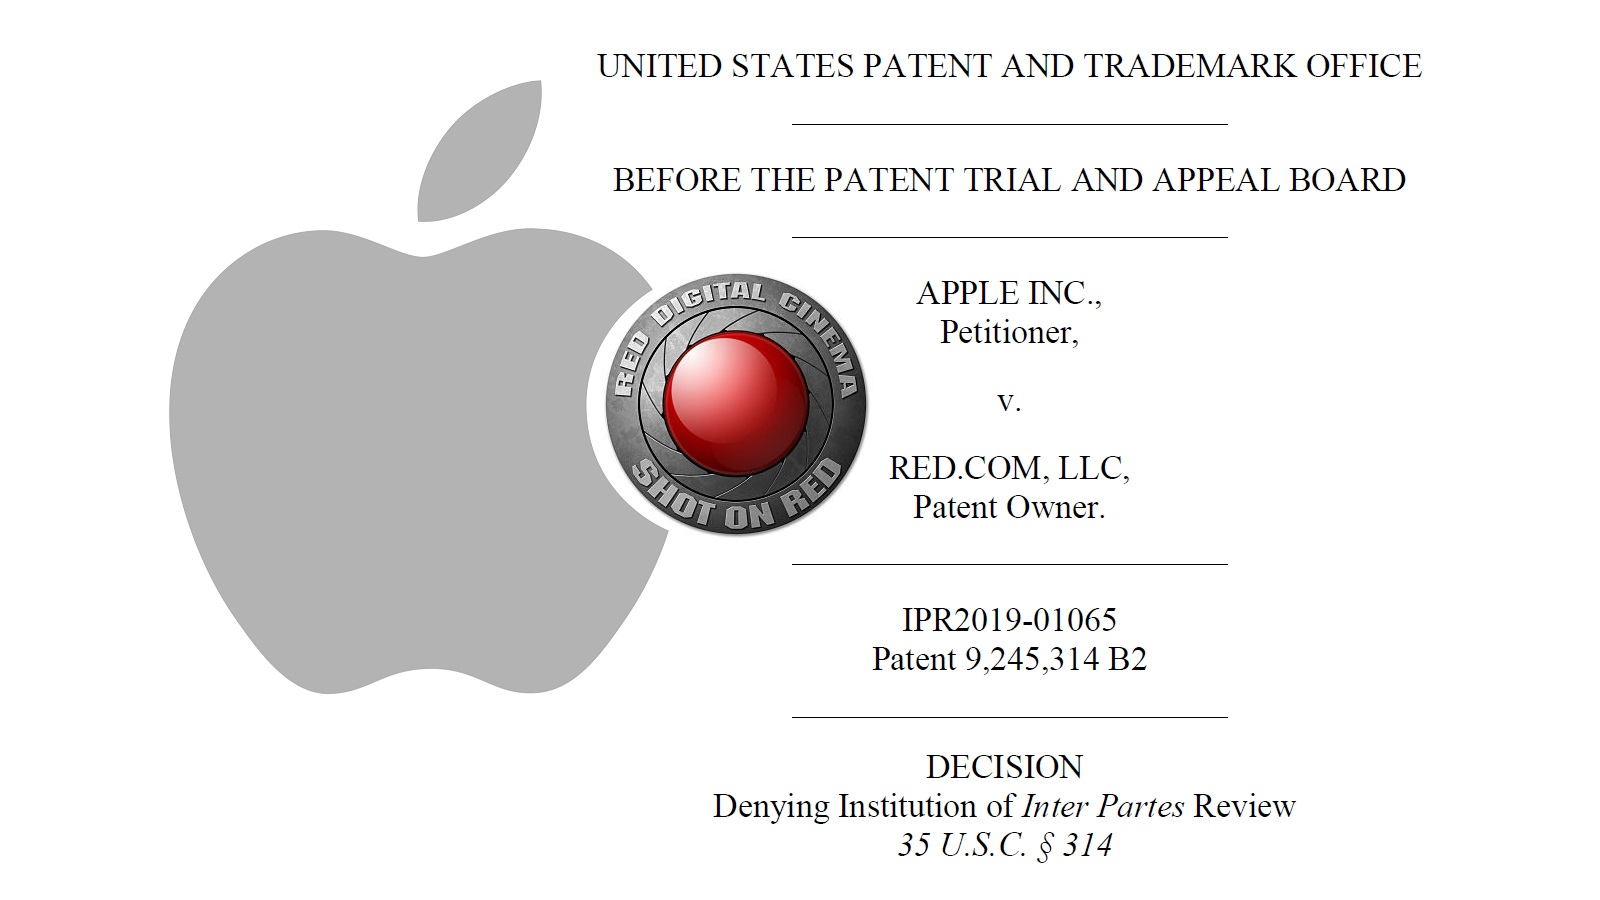 Desestiman impugnación de patente de Apple contra RED - la patente RED RAW sigue siendo válida